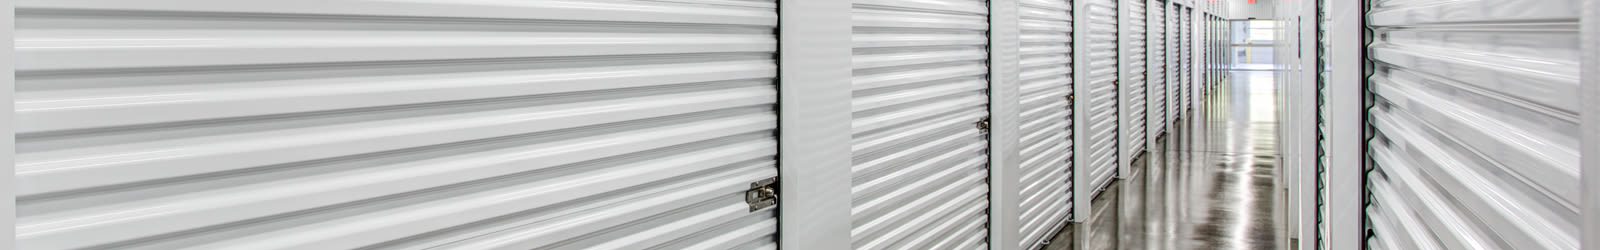 Contact us for your self storage needs in Mundelein